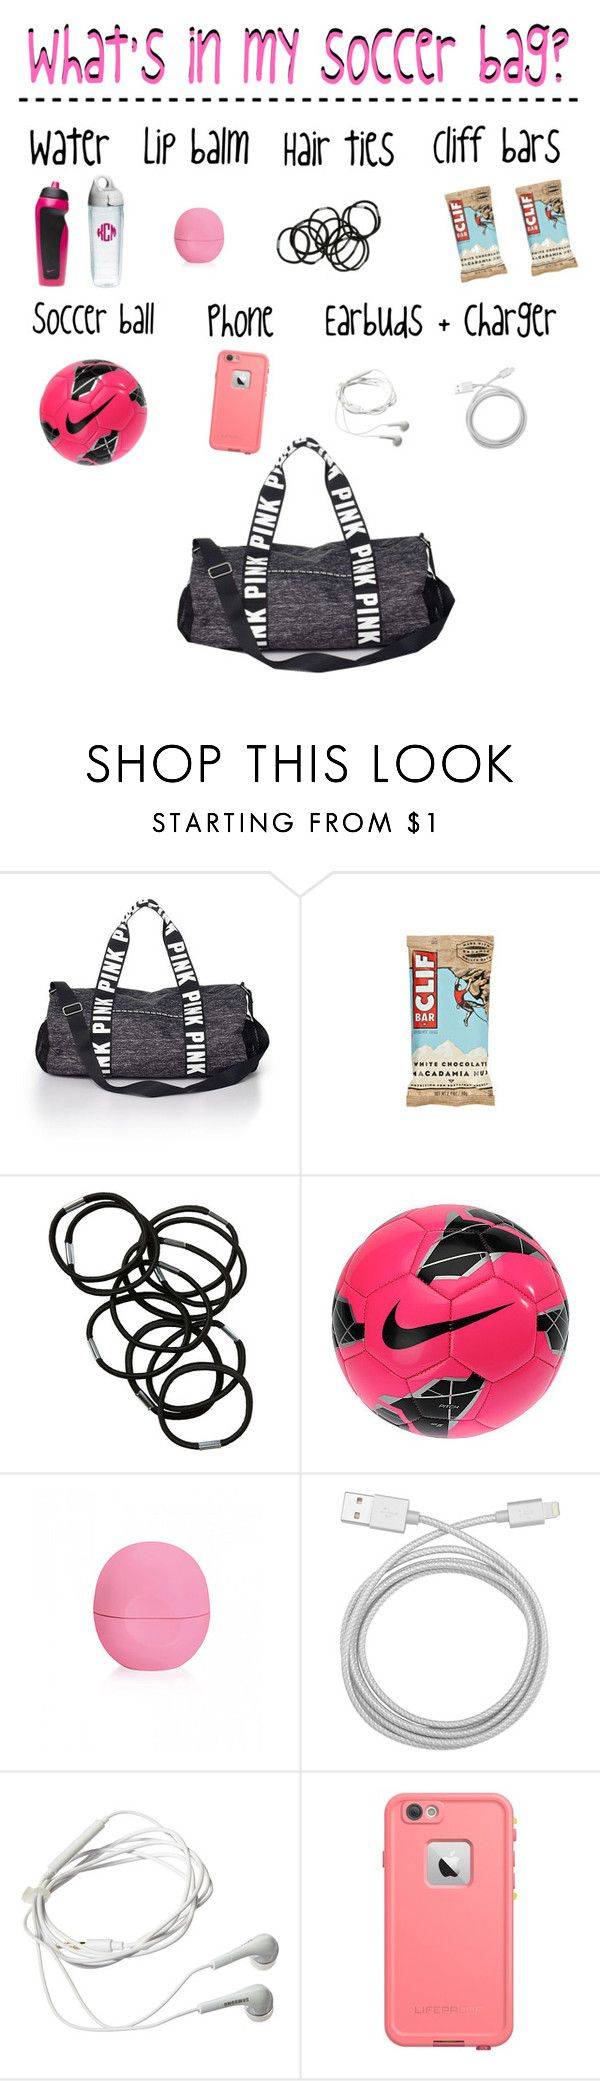 """What's in my soccer bag"" by strawberry-styles ❤ liked on Polyvore featuring Victoria's Secret PINK, Monki, NIKE, Eos, Belkin, Samsung, Tervis and LifeProof"